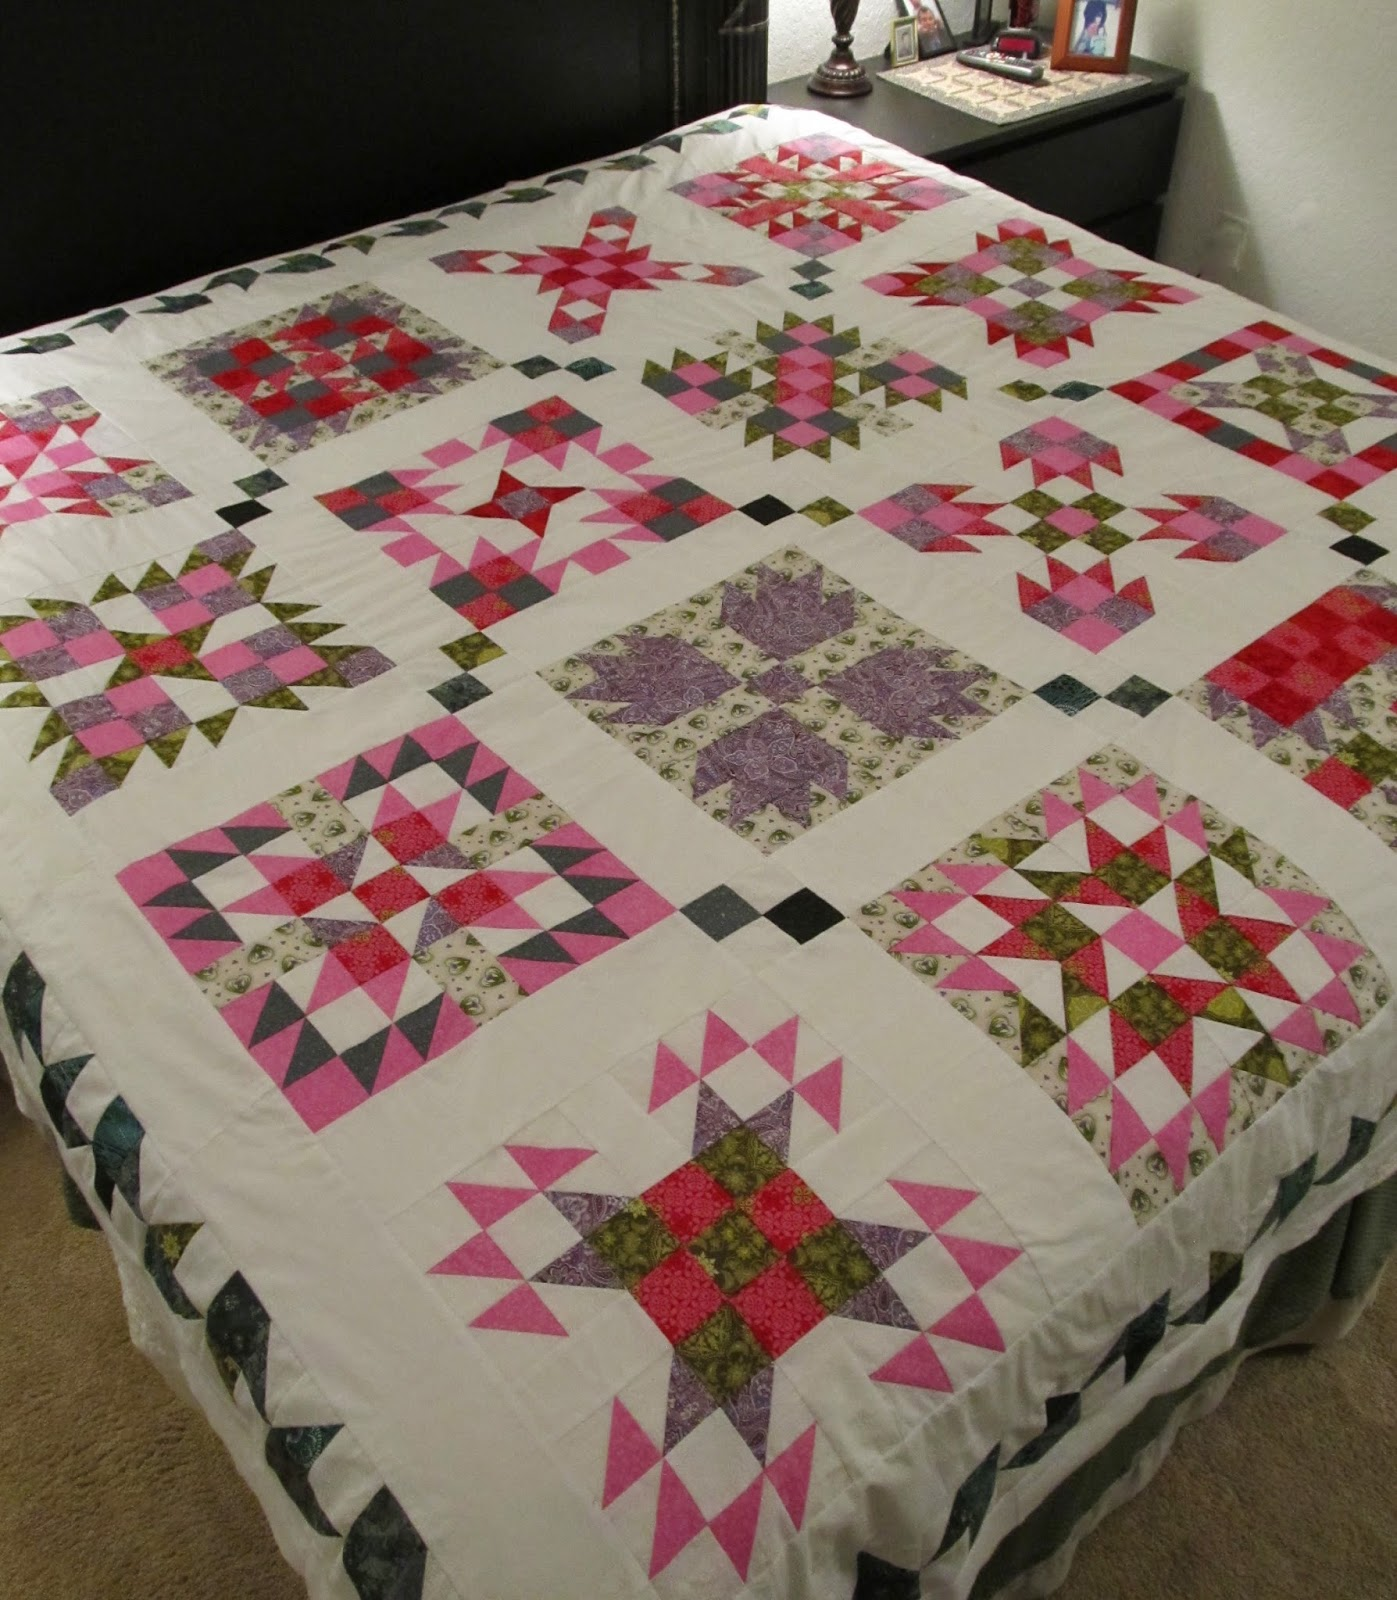 Tutorial on how to make a quilt block by The Quilt Ladies